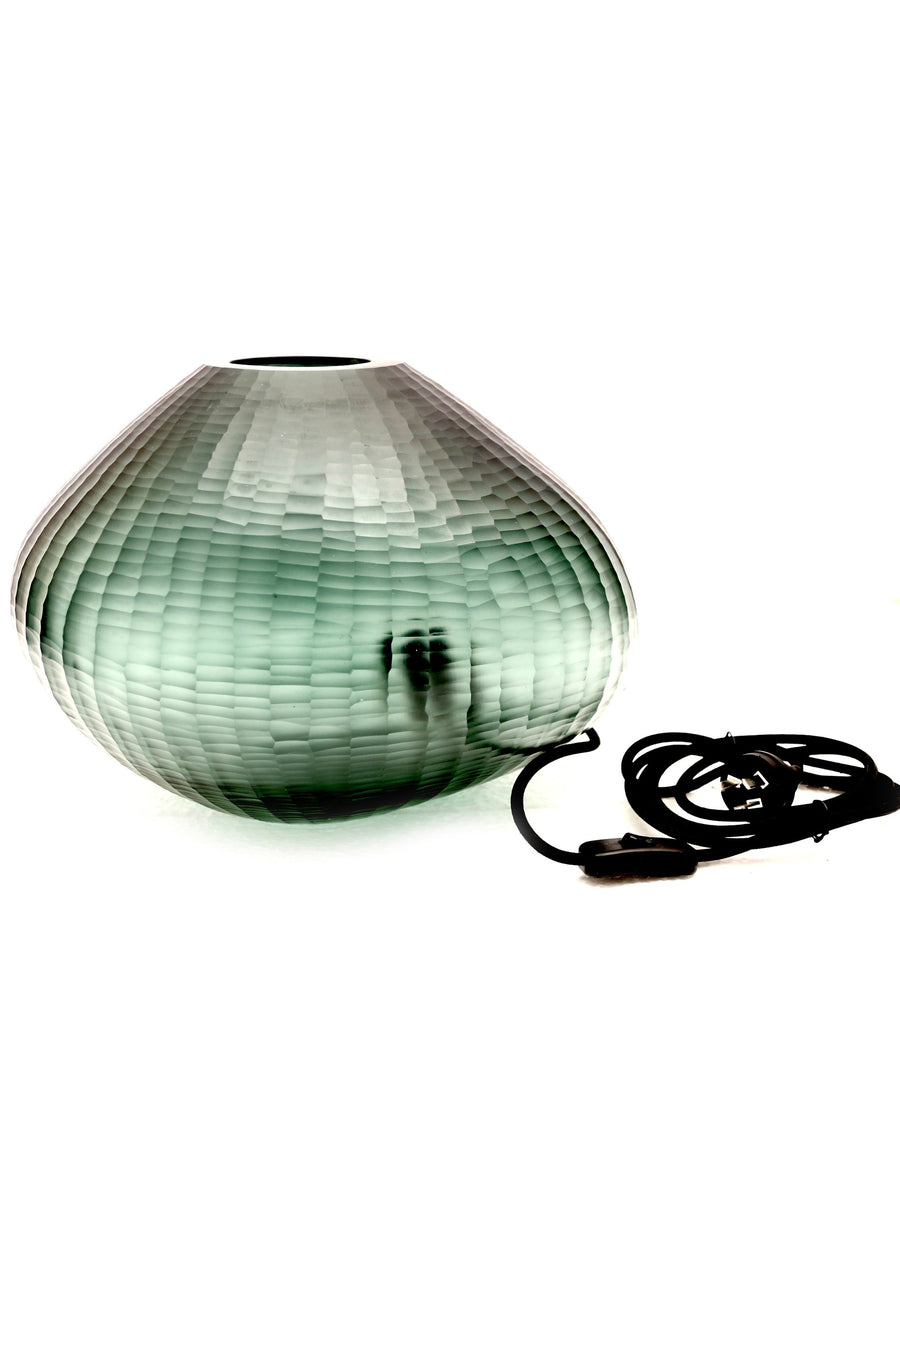 FREEFORM HAND CUT ART GLASS TABLE LAMP - BOTTLE GREEN - Nolan & Co